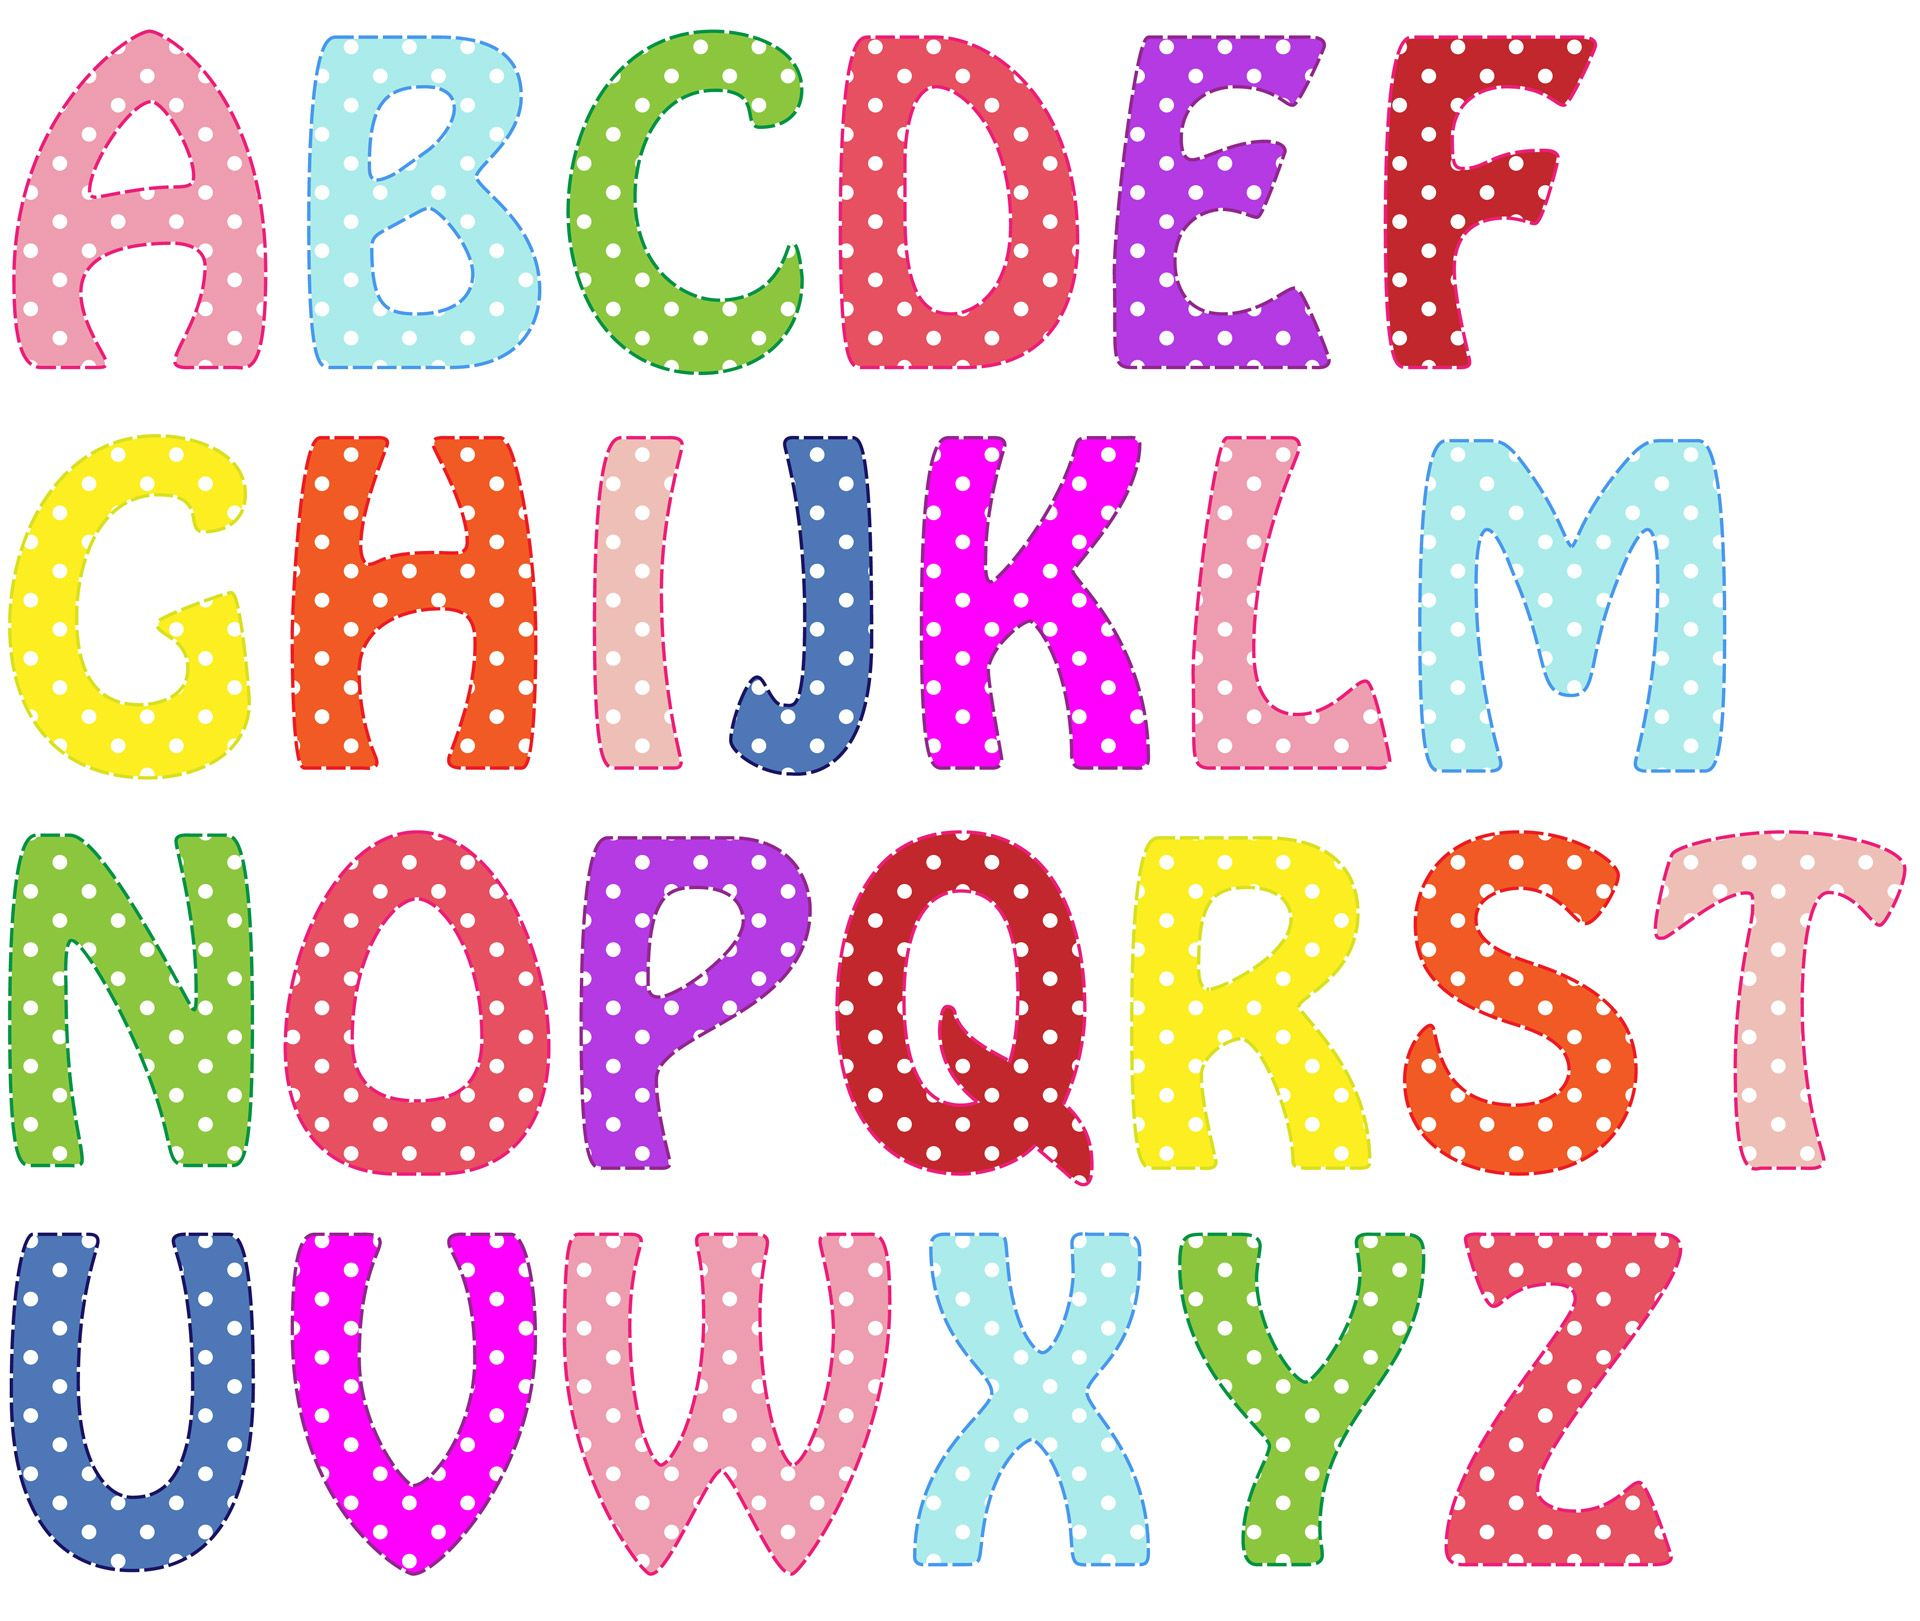 Alphabet Letters Bright Colors | ABC\'s | Pinterest | Alphabet ...